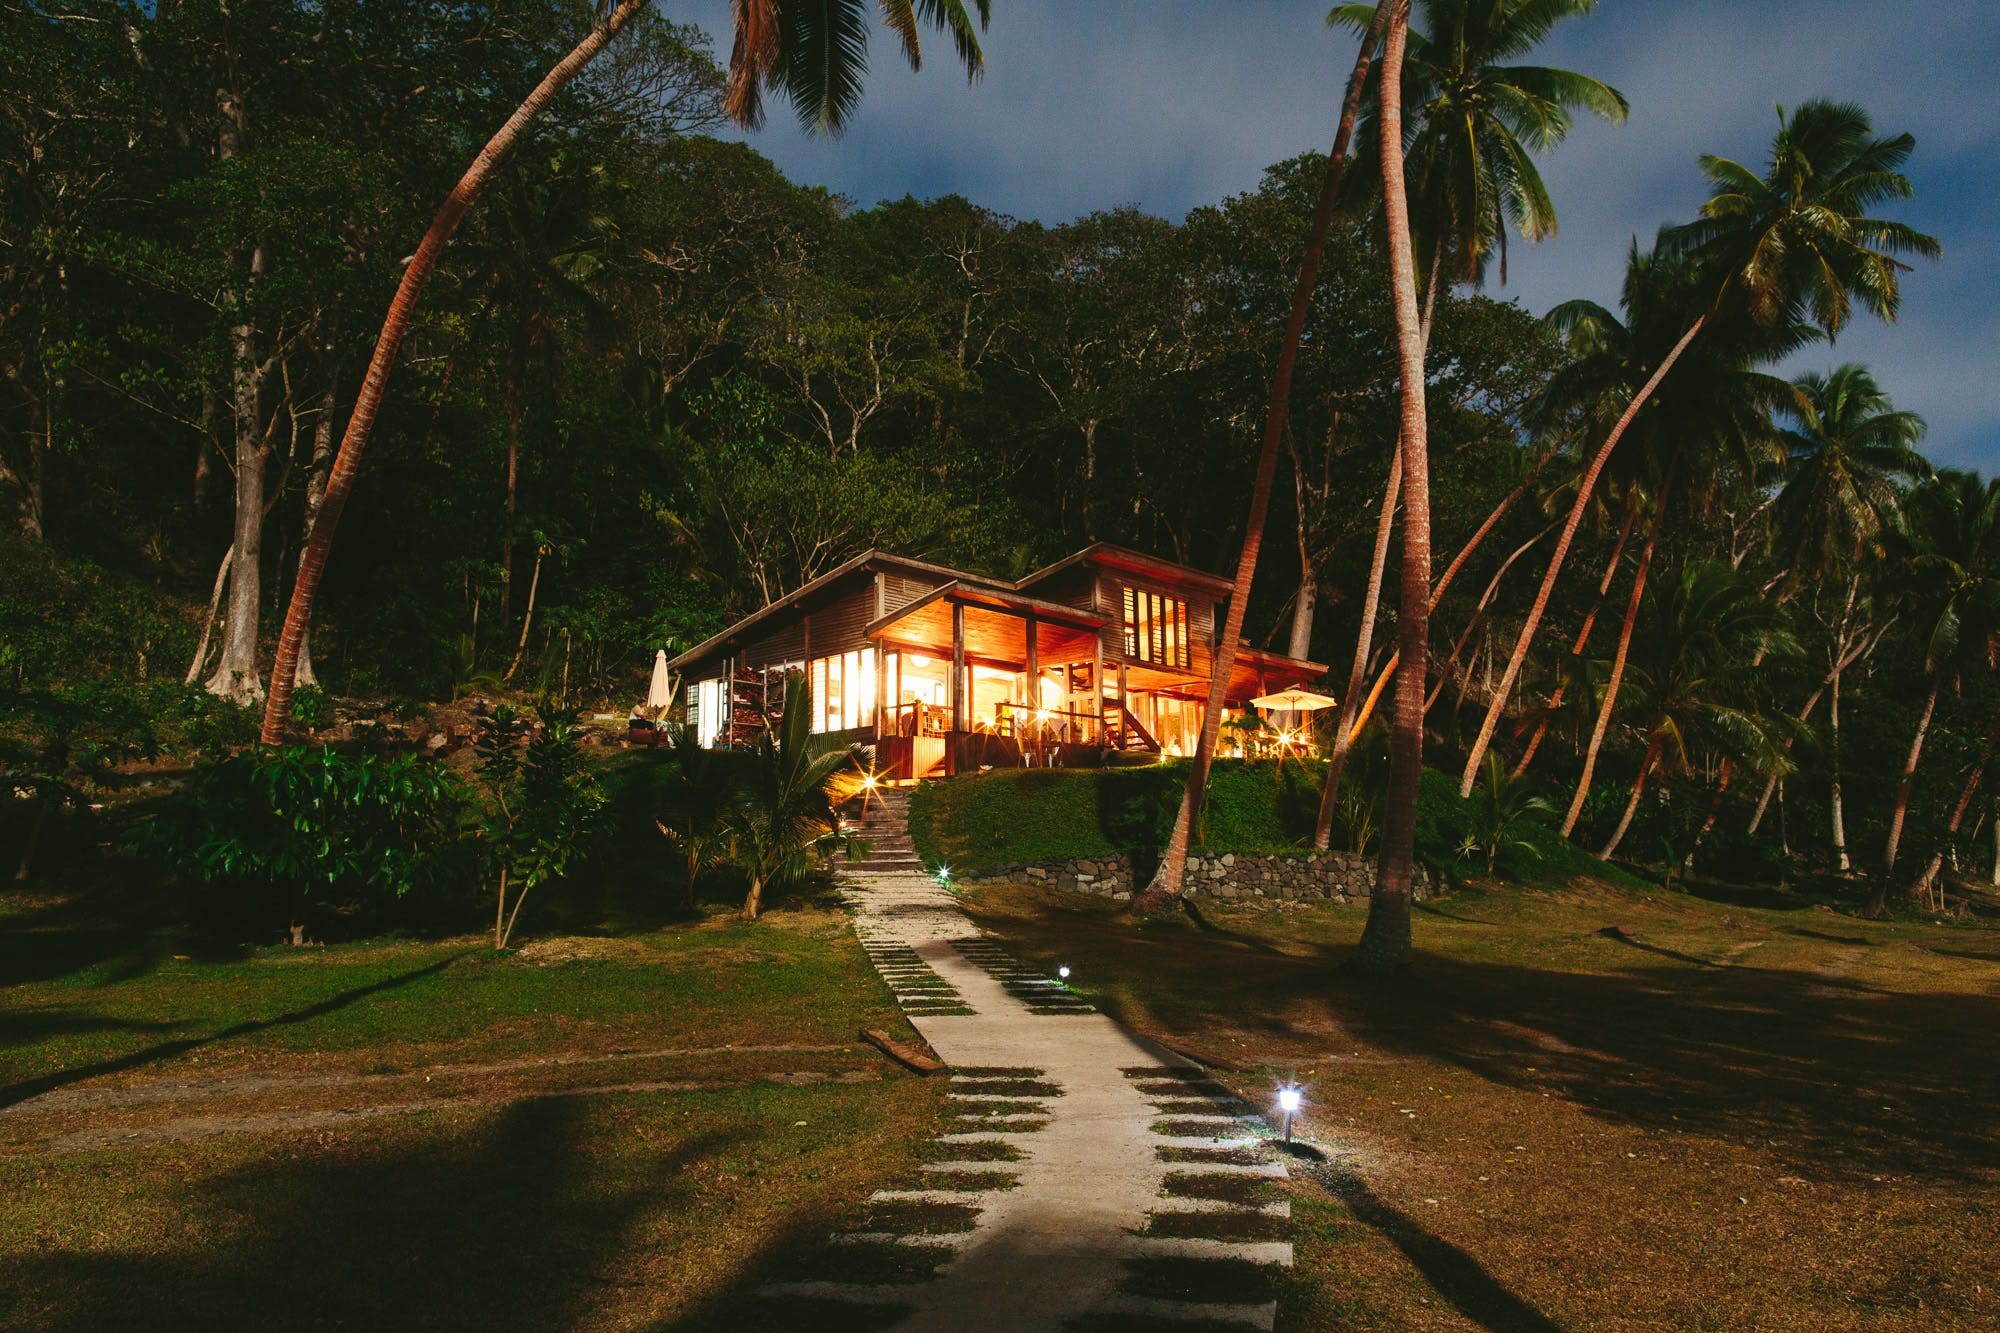 The Main Pavilion at night from the path at The Remote Resort Fiji Islands